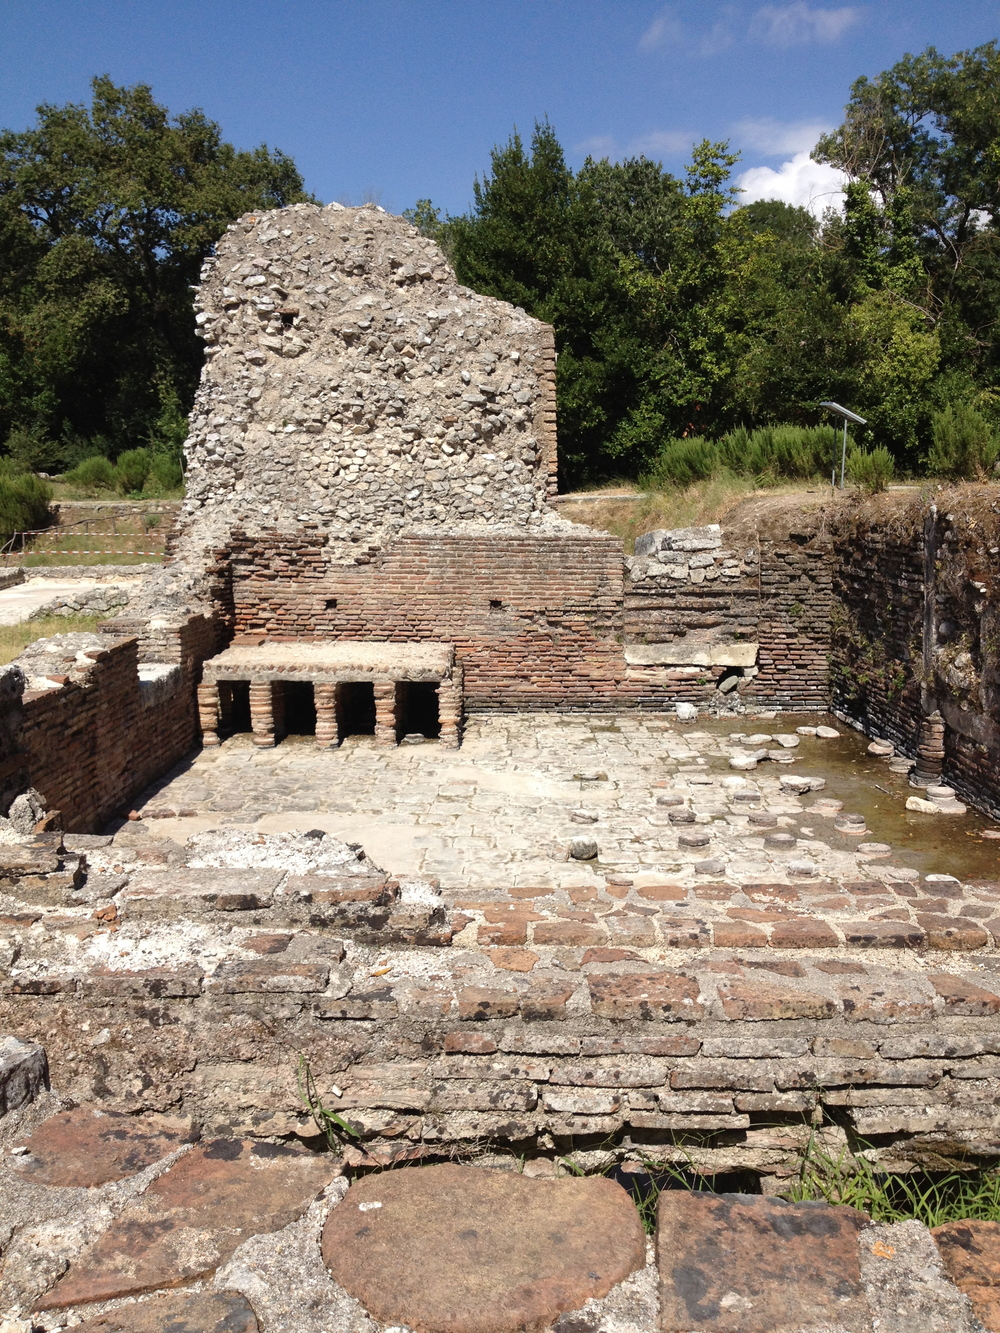 Remains of the Roman bathhouse, Butrint, Albania